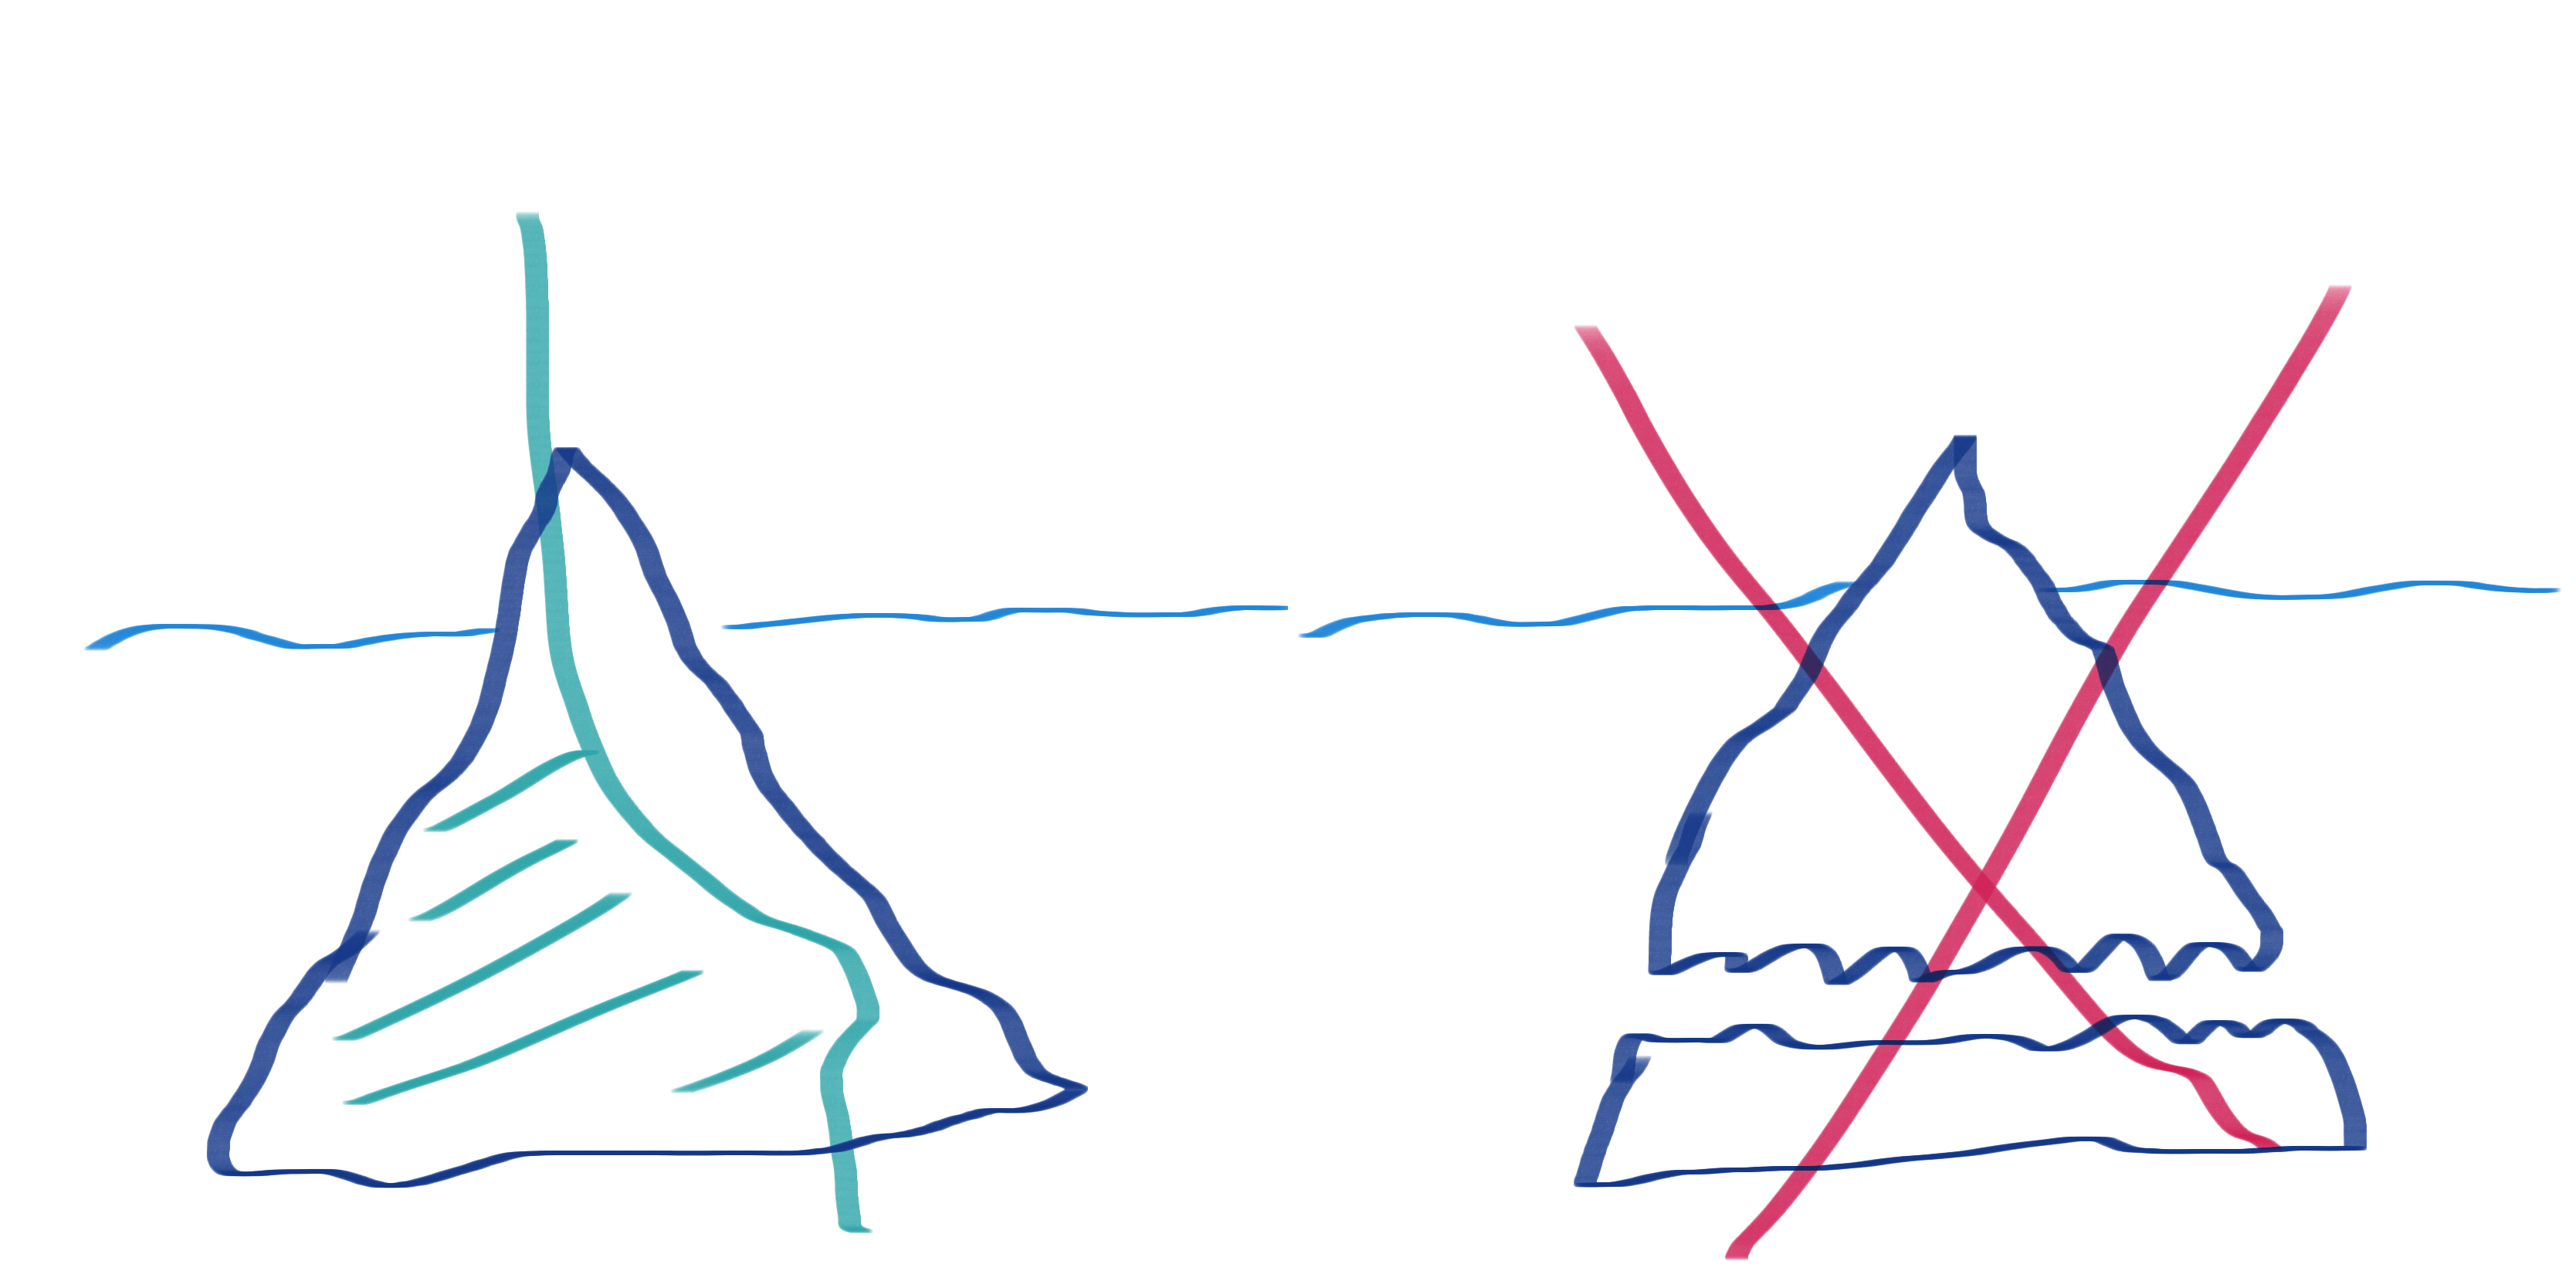 Two images. Left has iceberg with a green line cutting vertically through it. It takes a little off the top but a lot off the bottom. Right image is an iceberg with a horizontal crack through it. A red X is overlaid.